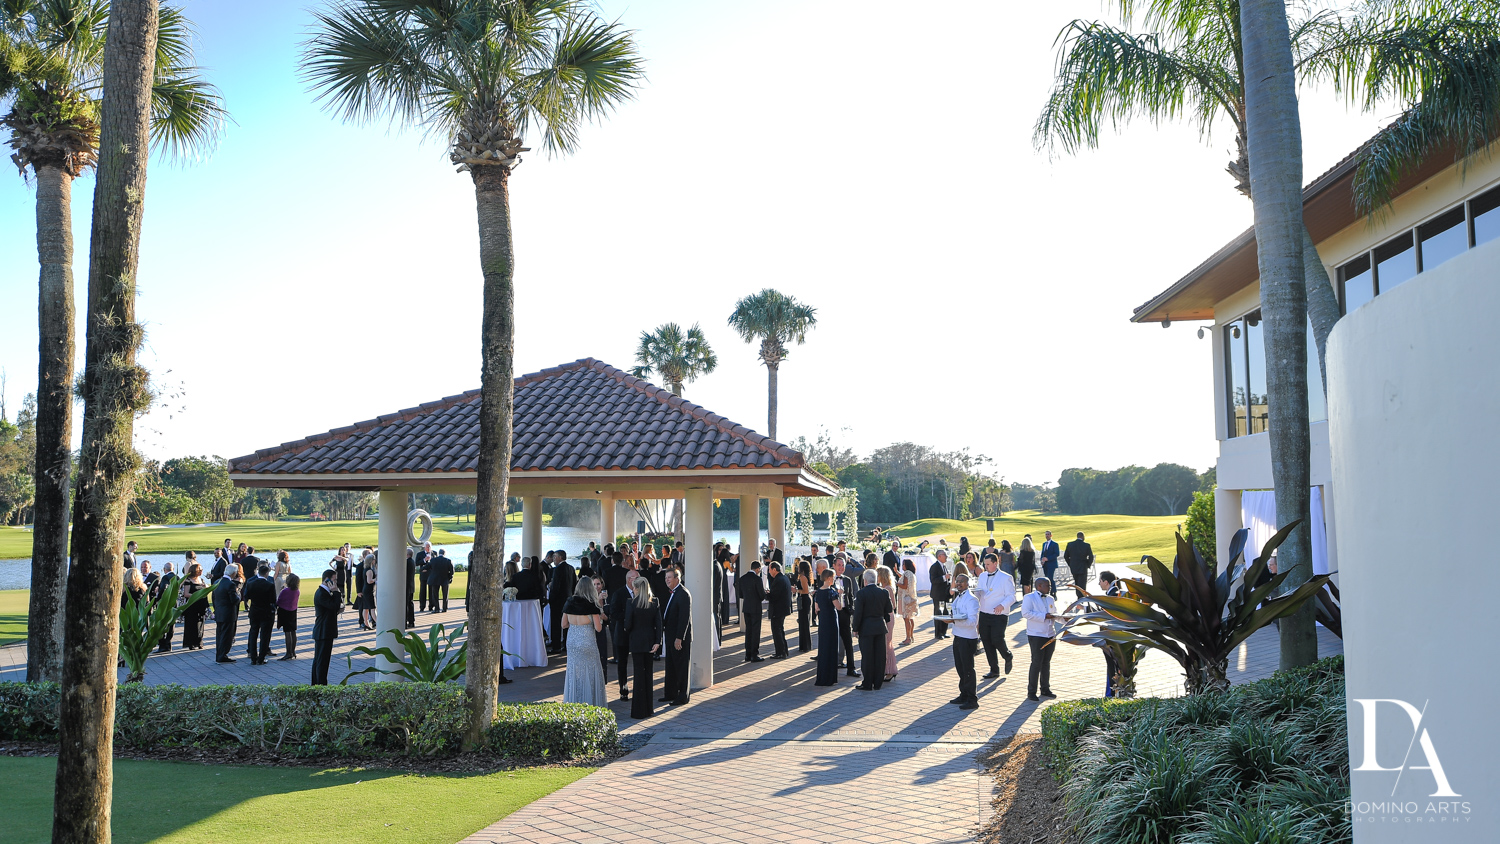 outdoors cocktail at Sunset Wedding at Boca Rio Golf Club by Domino Arts Photography